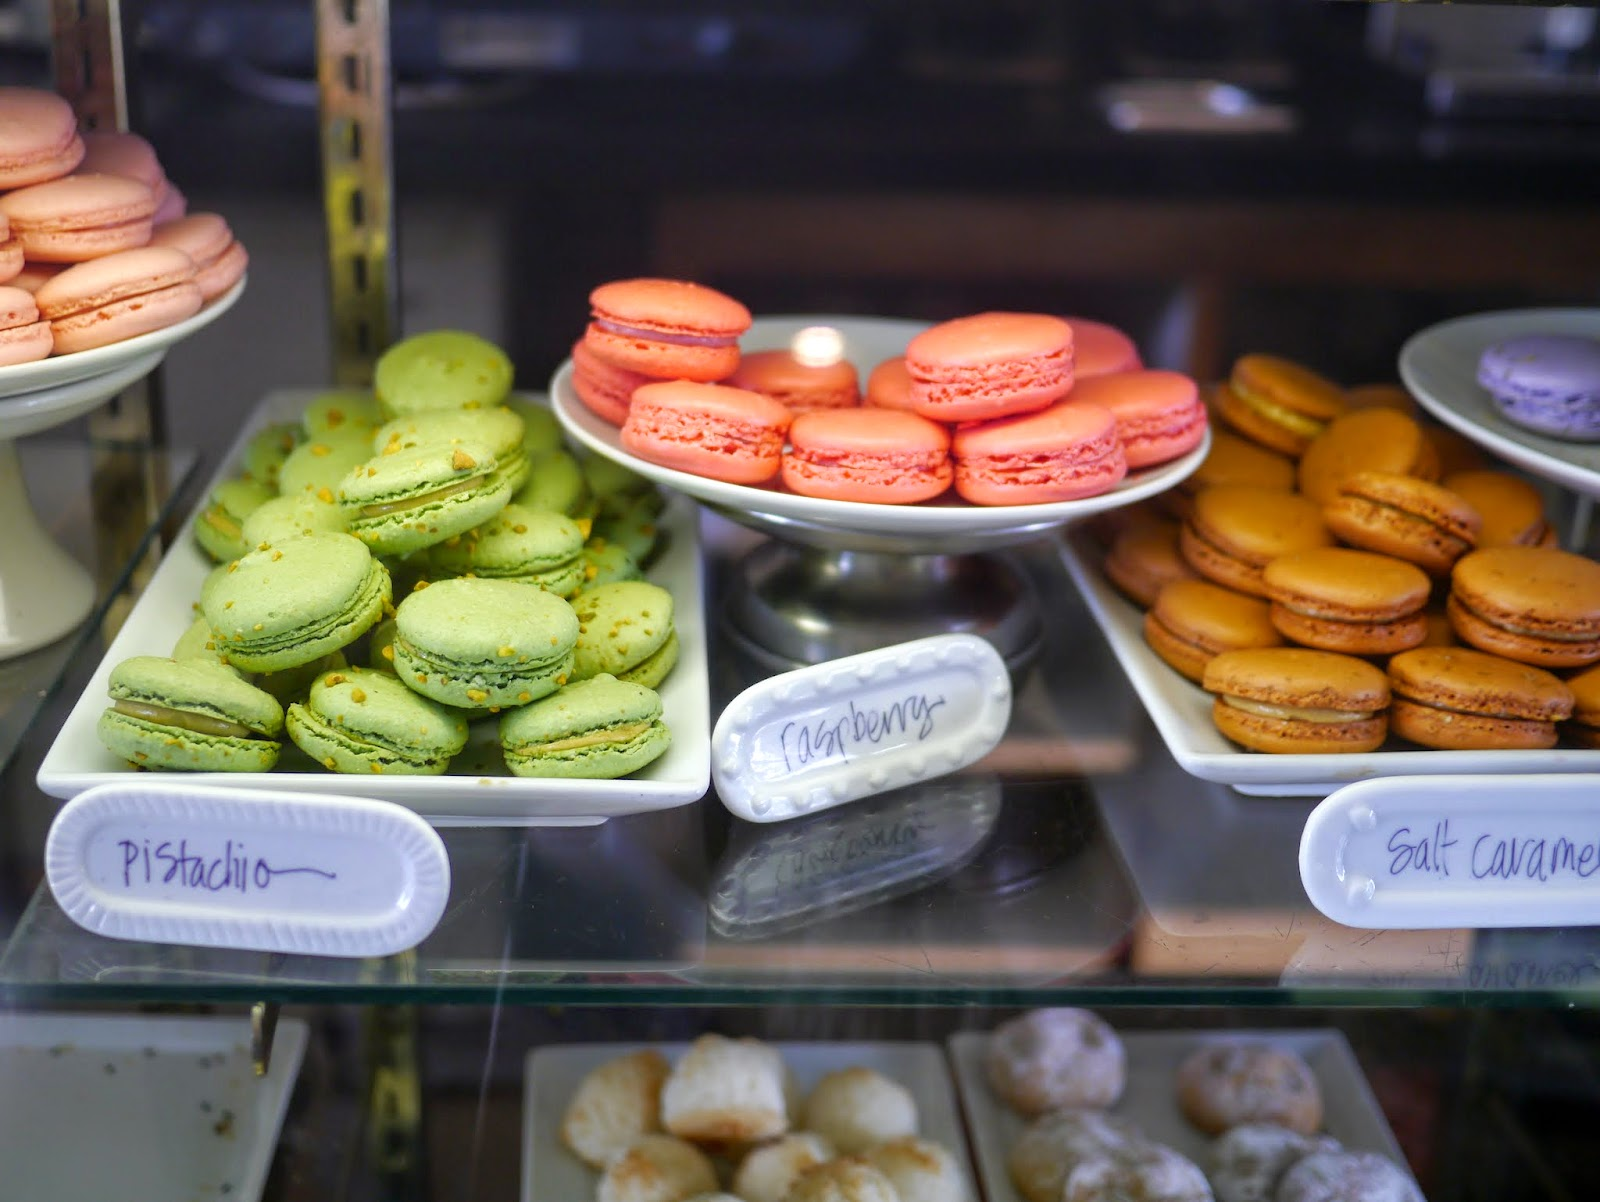 so this afternoon after school we met up with a few friends and went on a macaron treasure hunt visiting four local stores that sell macarons masseu0027s